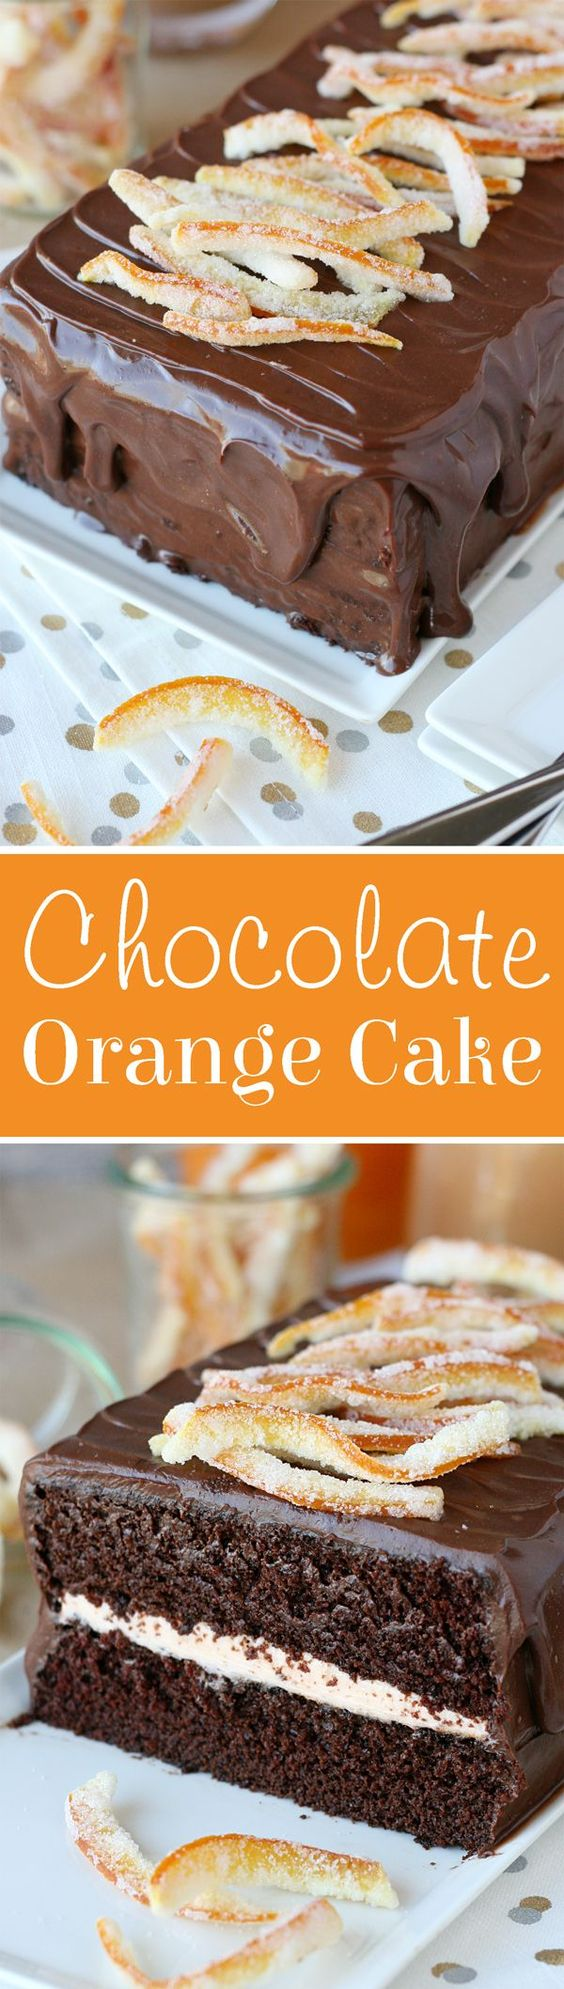 This Chocolate Orange Cake is rich, moist, flavorful and simply gorgeous!